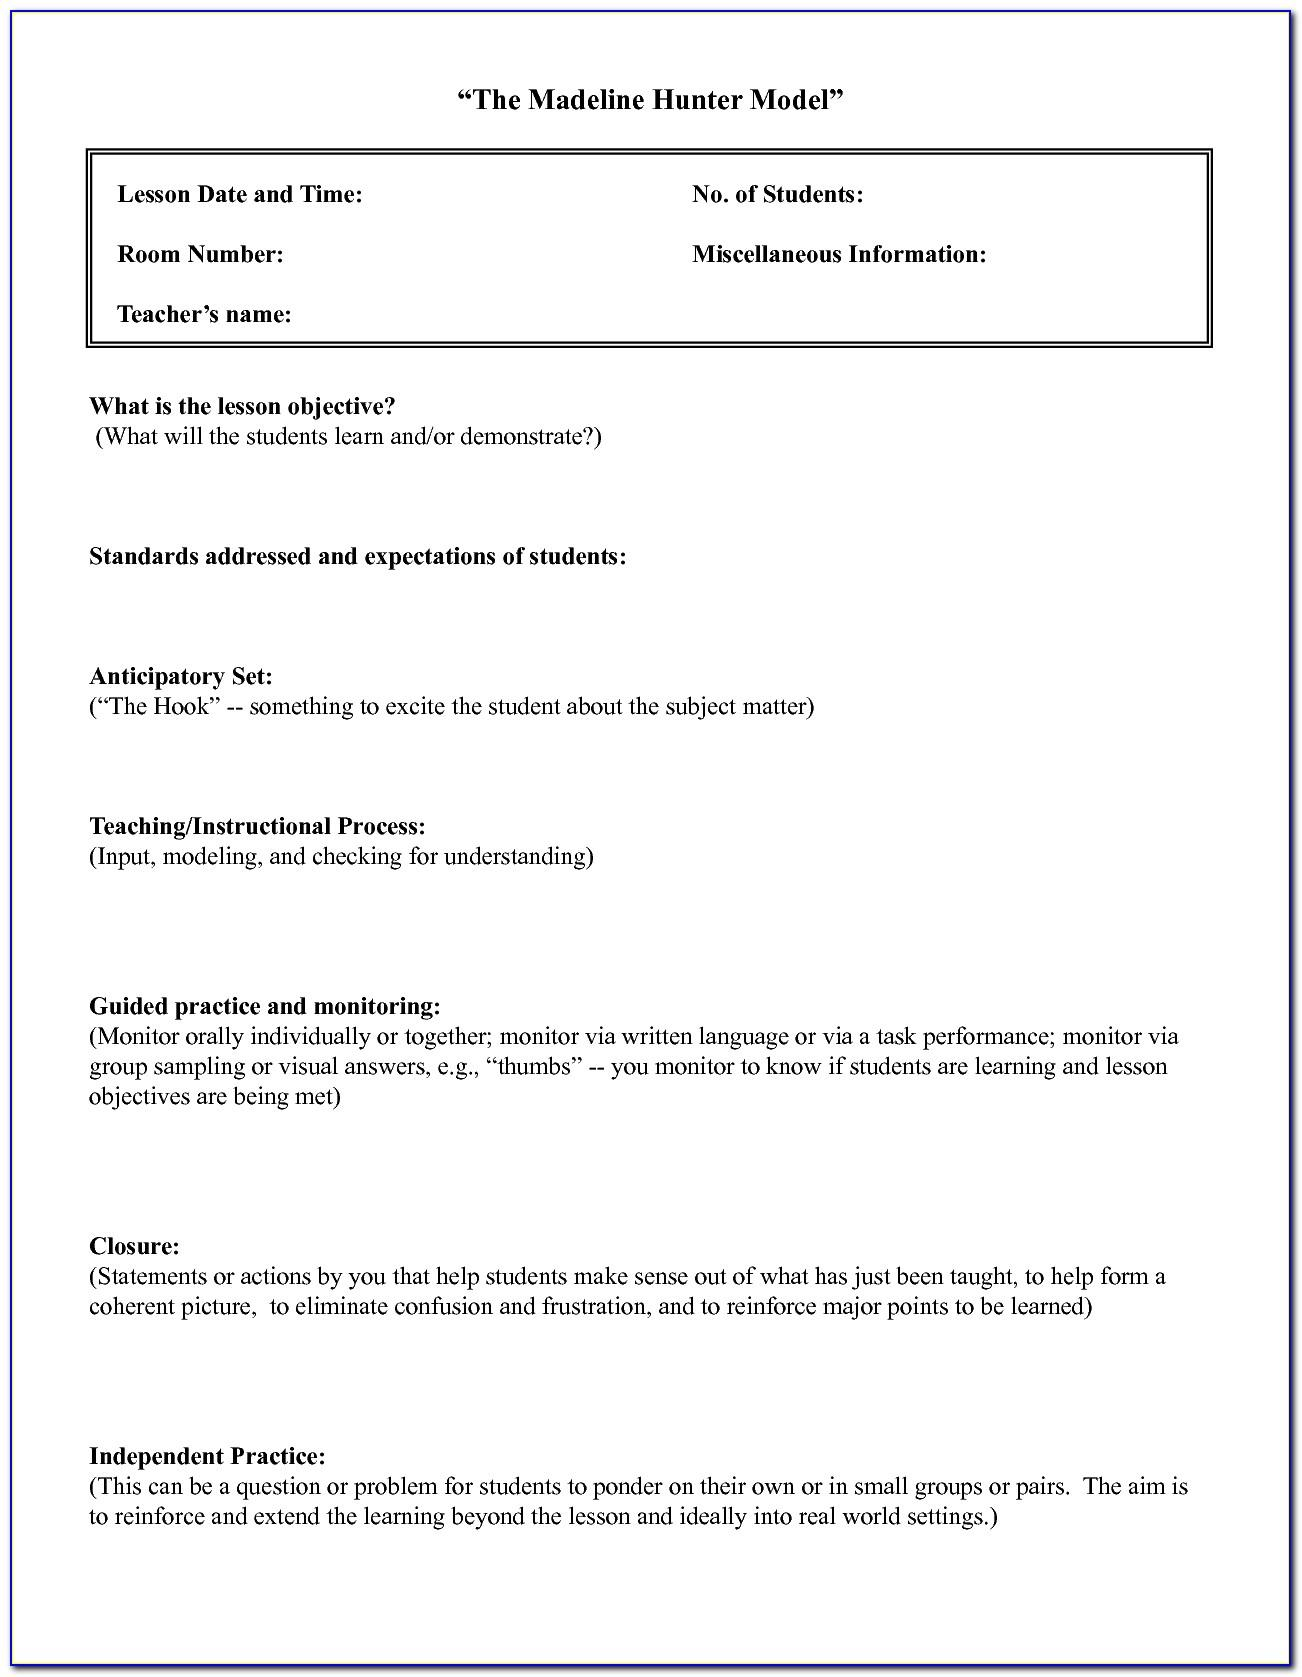 Madeline Hunter Lesson Plan Template Microsoft Word